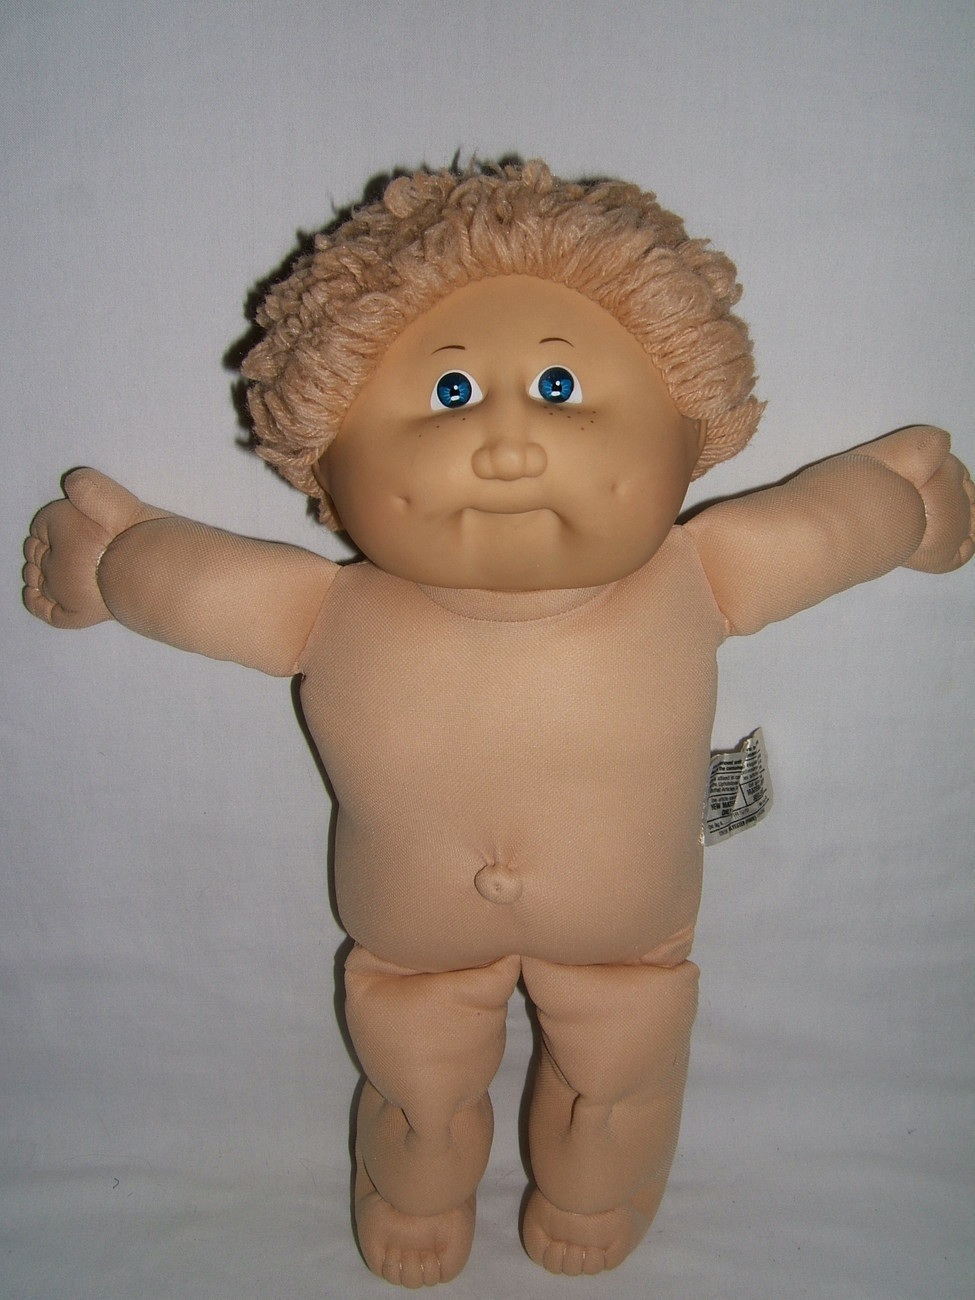 Vintage Cabbage Patch Dolls Beautiful Vintage Cabbage Patch Boy Doll Black Signature No Date Of Amazing 43 Models Vintage Cabbage Patch Dolls